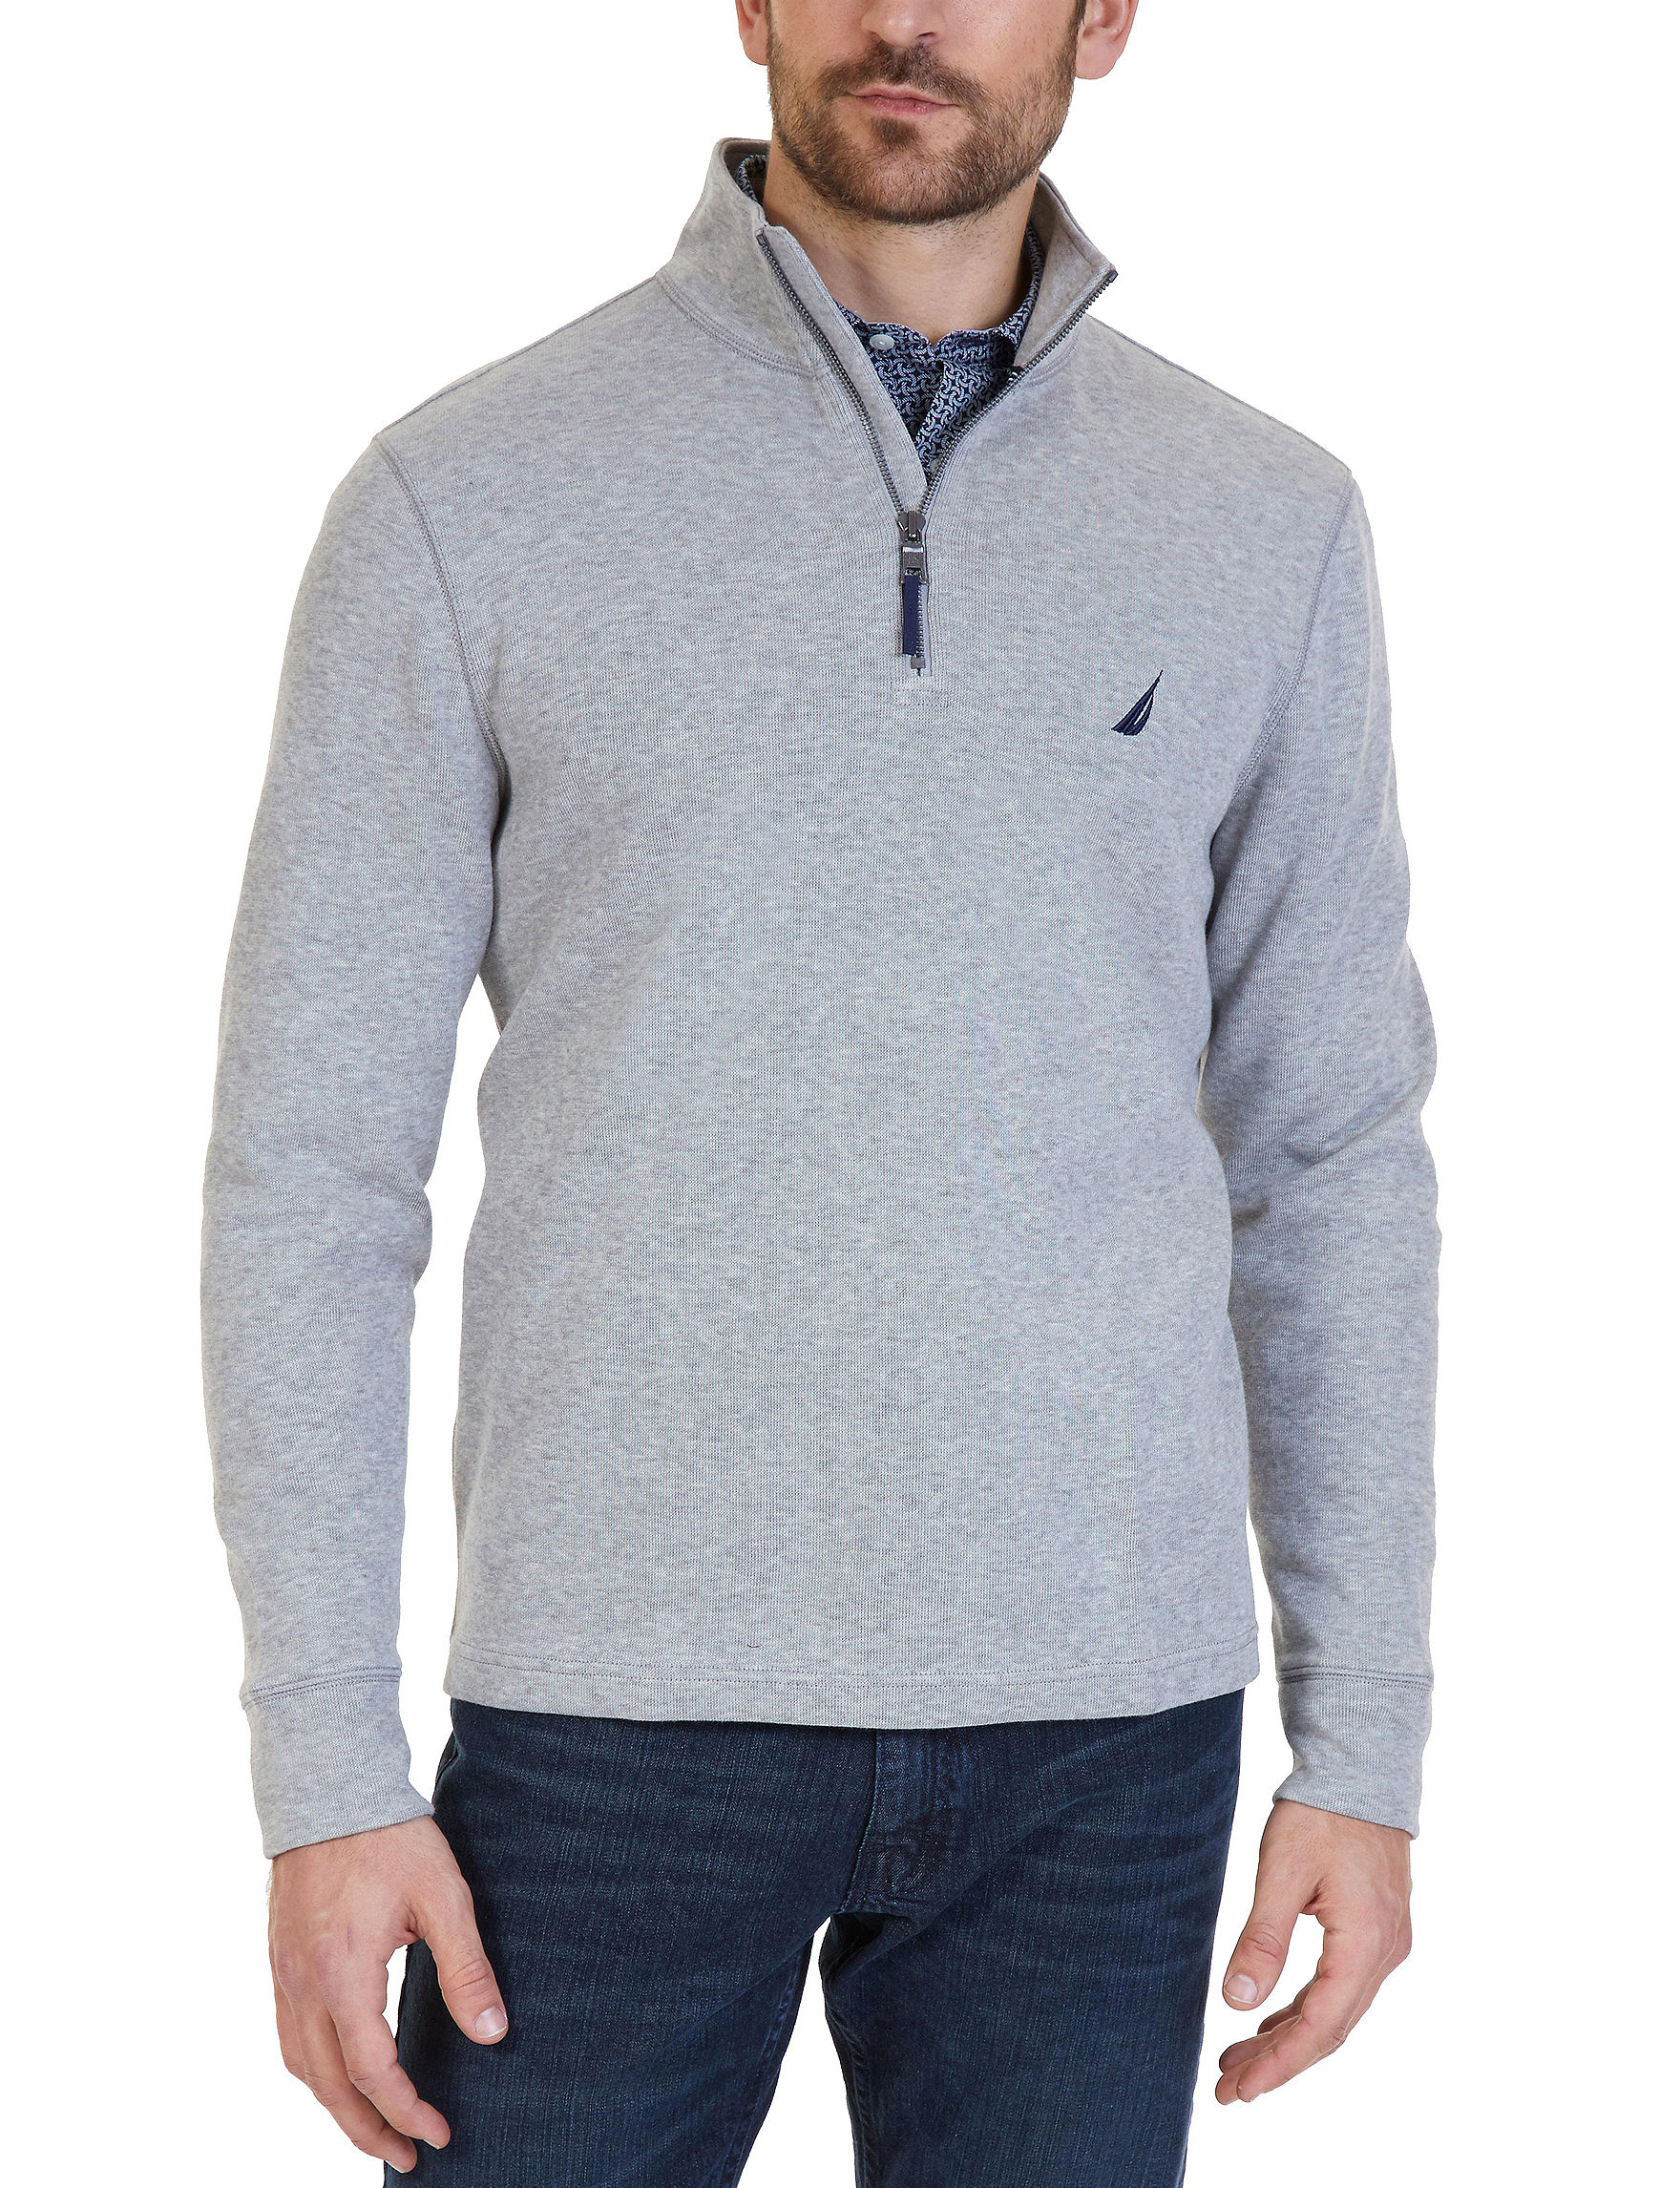 Nautica Heather Charcoal Pull-overs